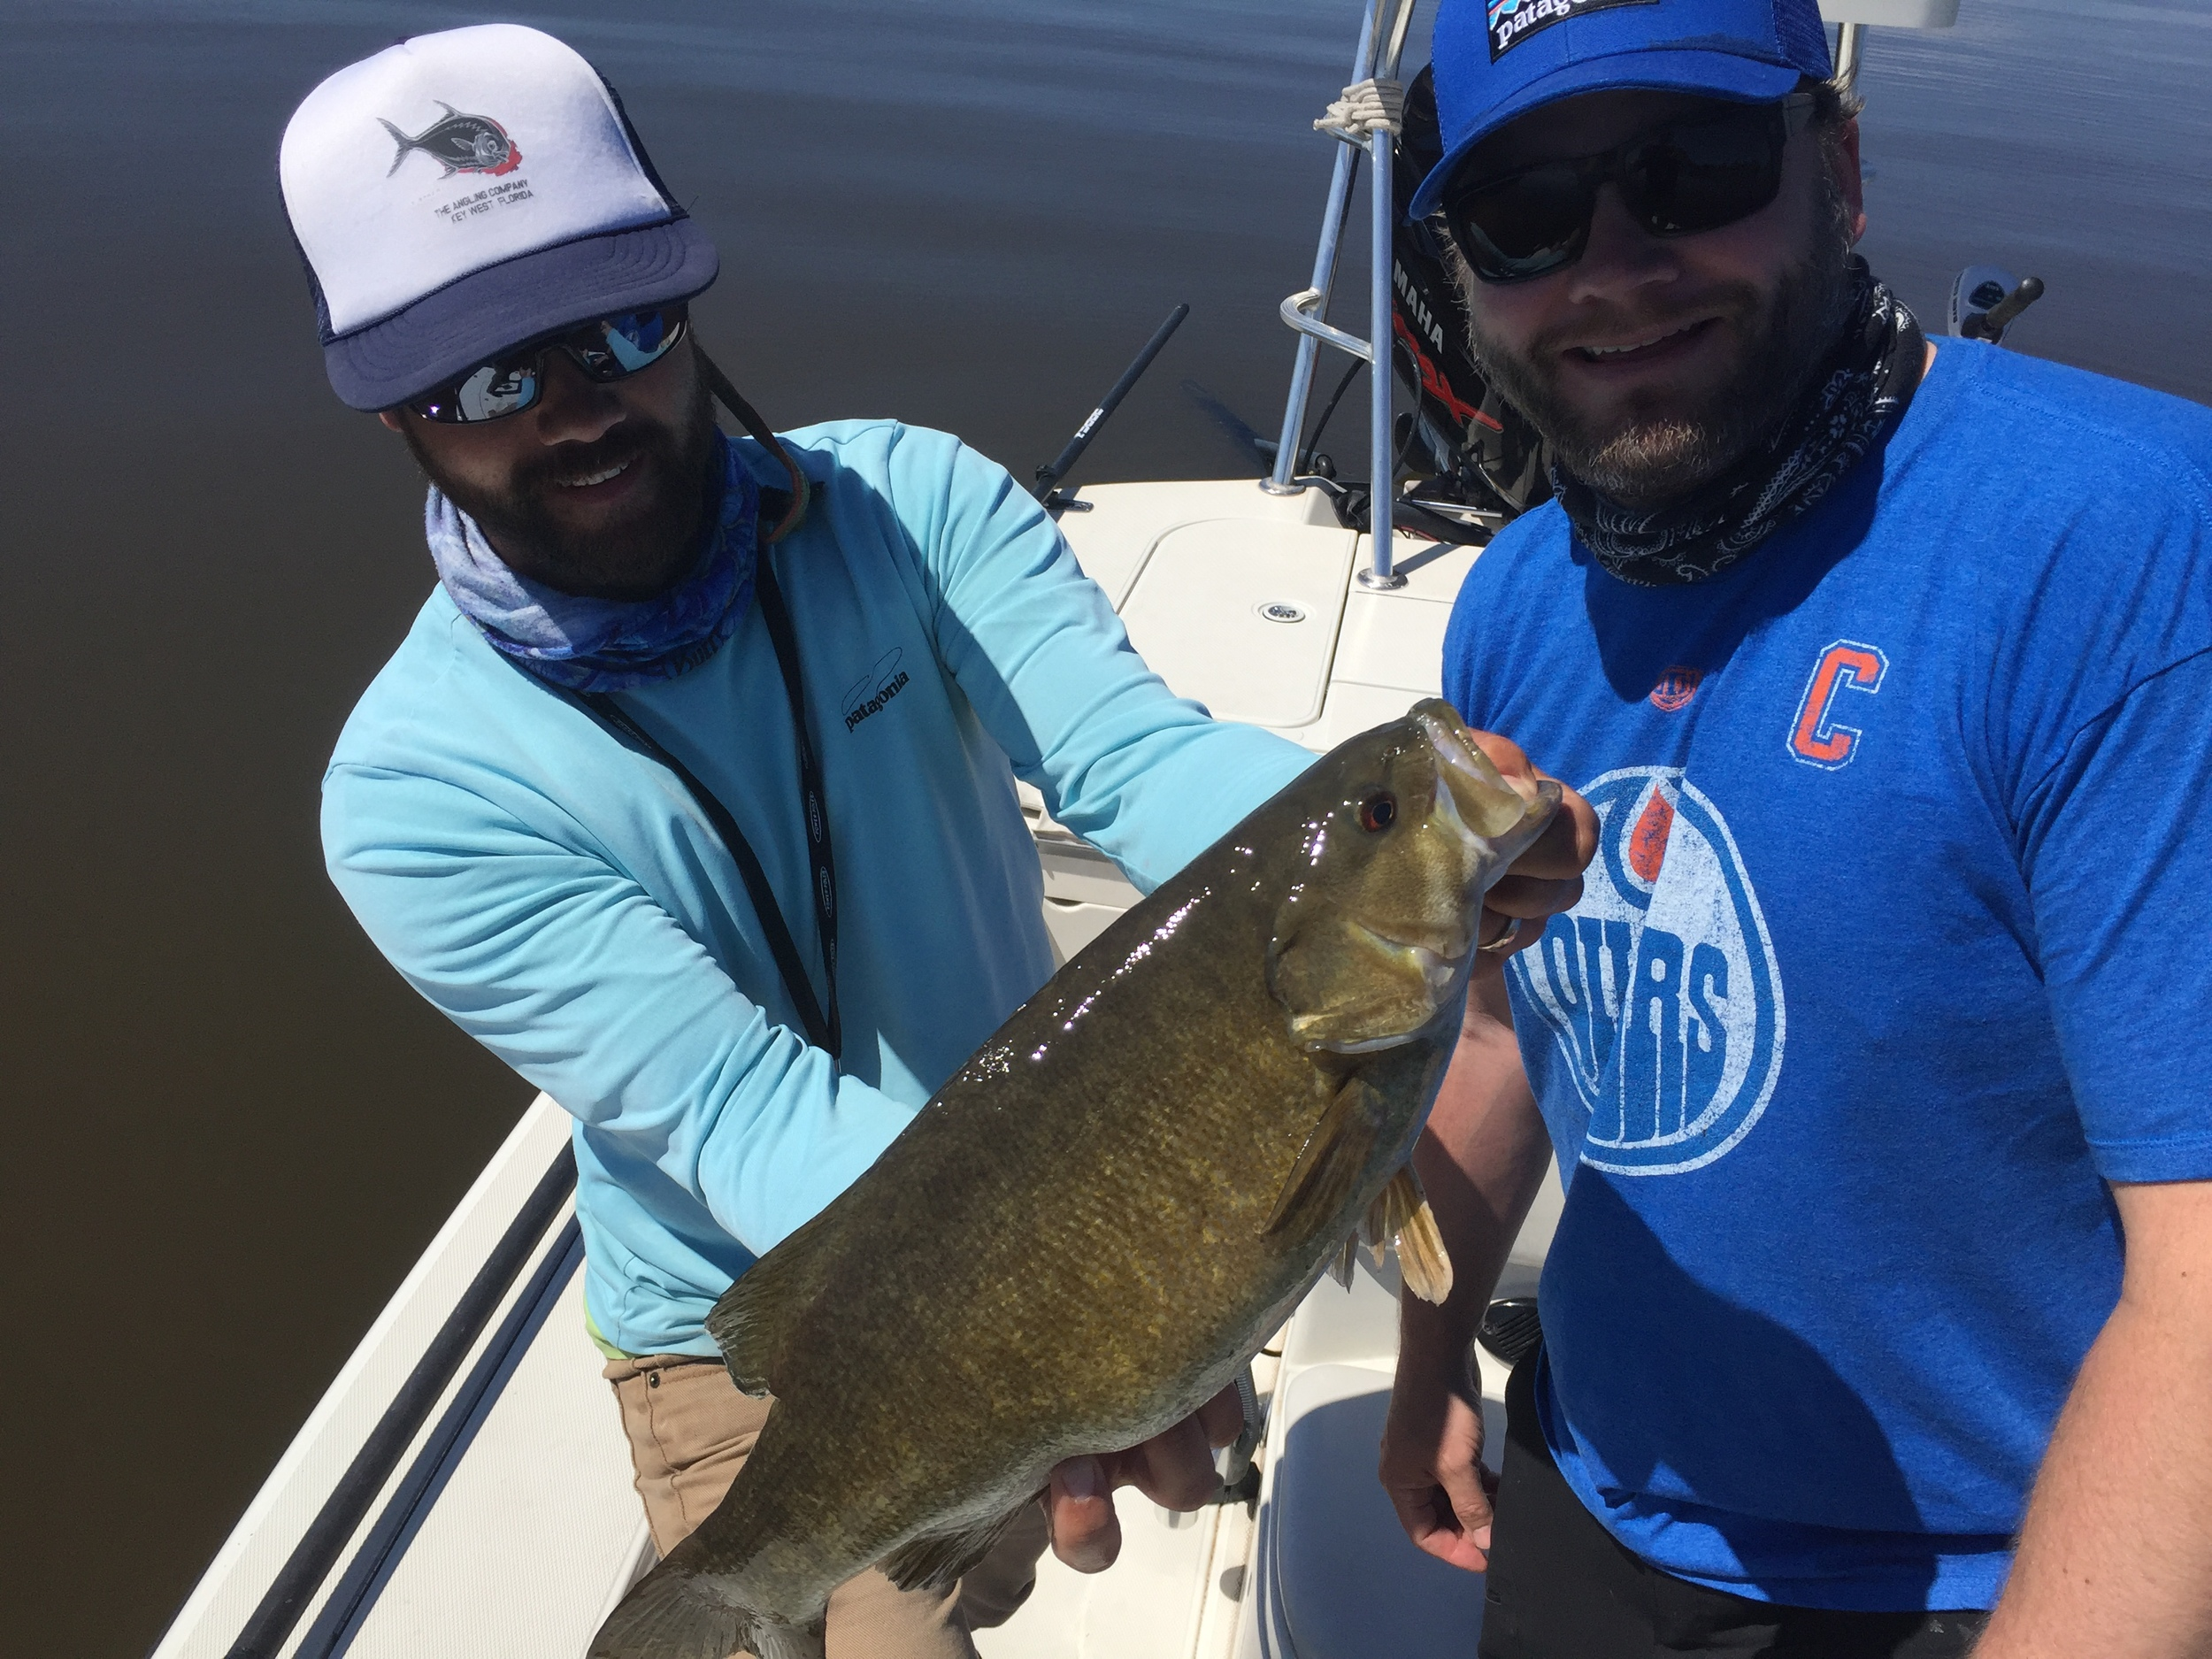 Dutch from the Twin Cities had an epic day on the Bay with perfect weather and grabby fish all day.